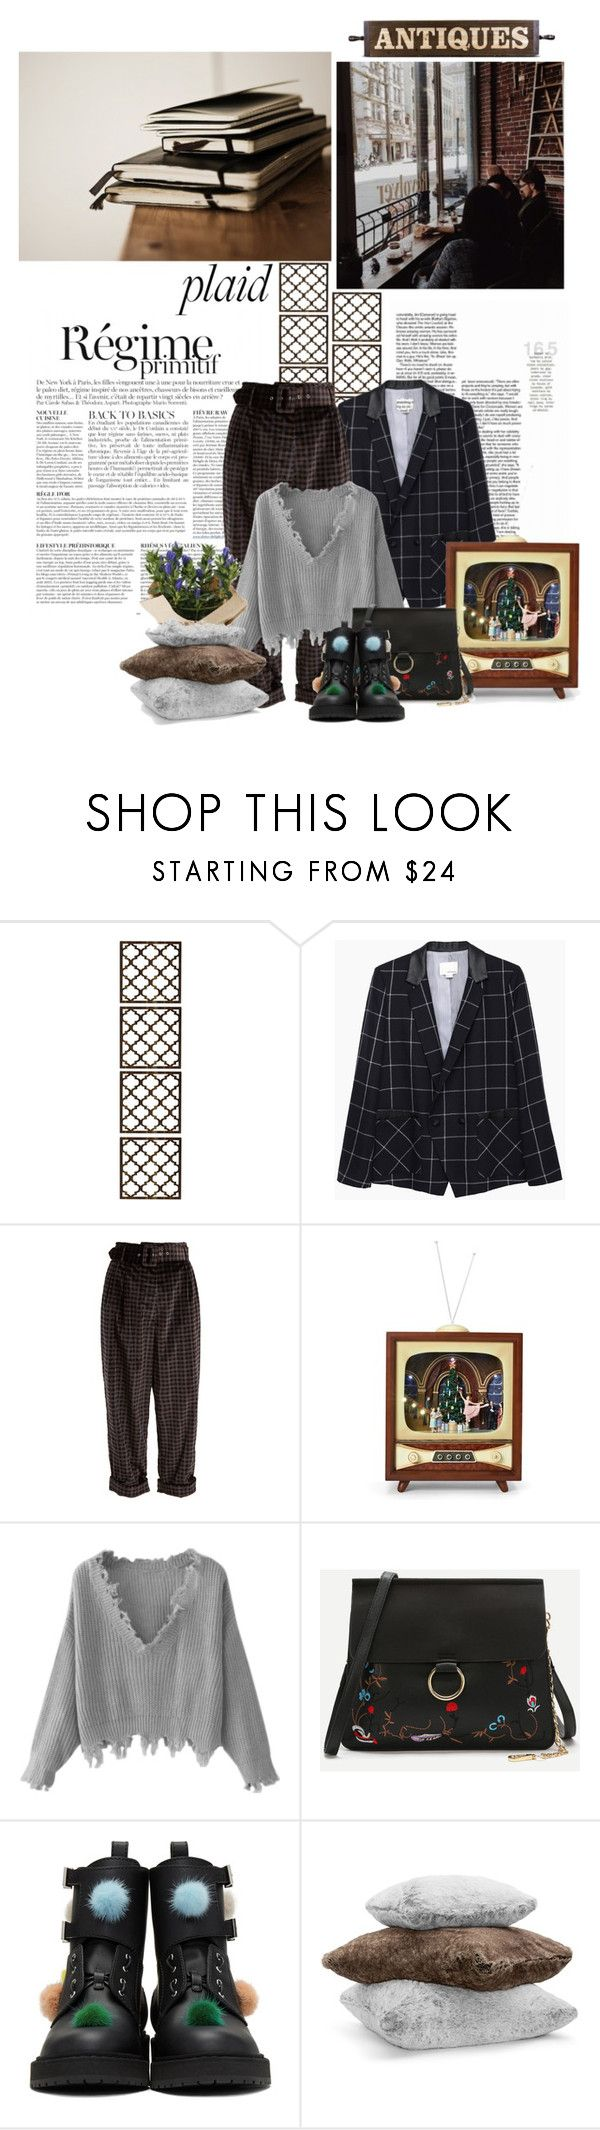 """""""Untitled #1107"""" by barnetta ❤ liked on Polyvore featuring Anja, Marrakech, Band of Outsiders, Isa Arfen, Roman, WithChic, Muji, Fendi and Hudson Park"""